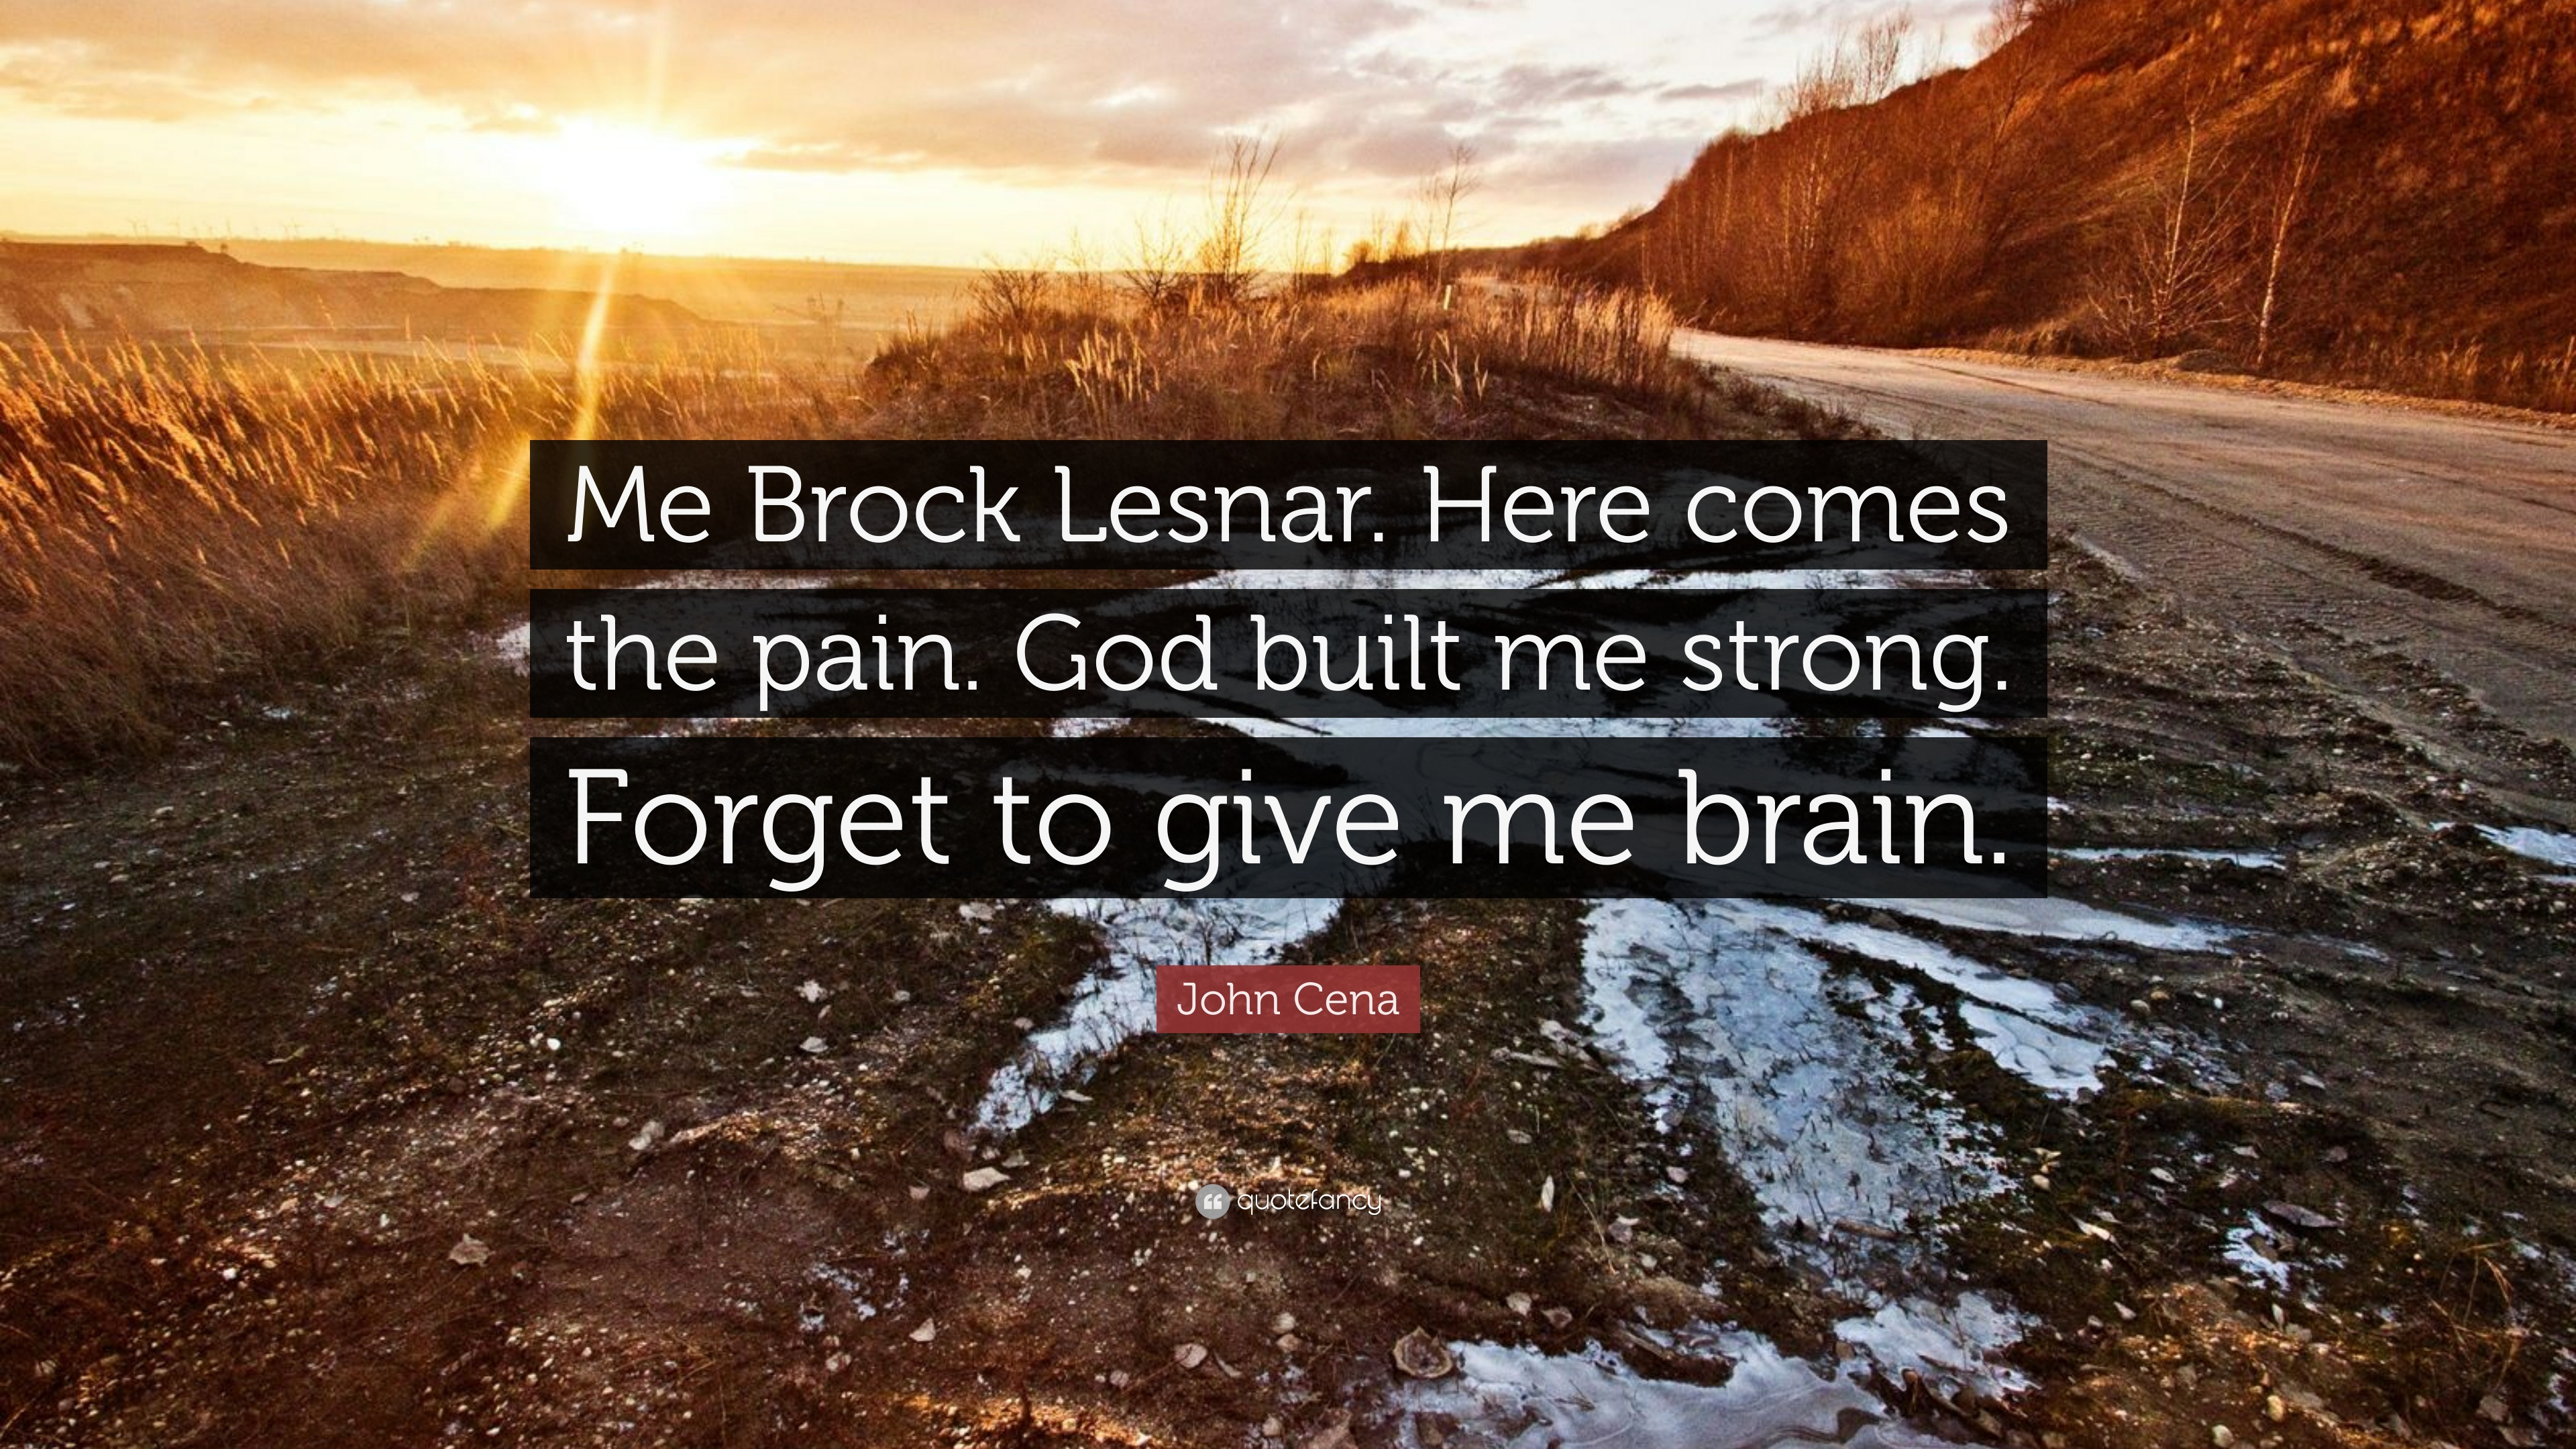 7 Wallpapers John Cena Quote Me Brock Lesnar Here Comes The Pain